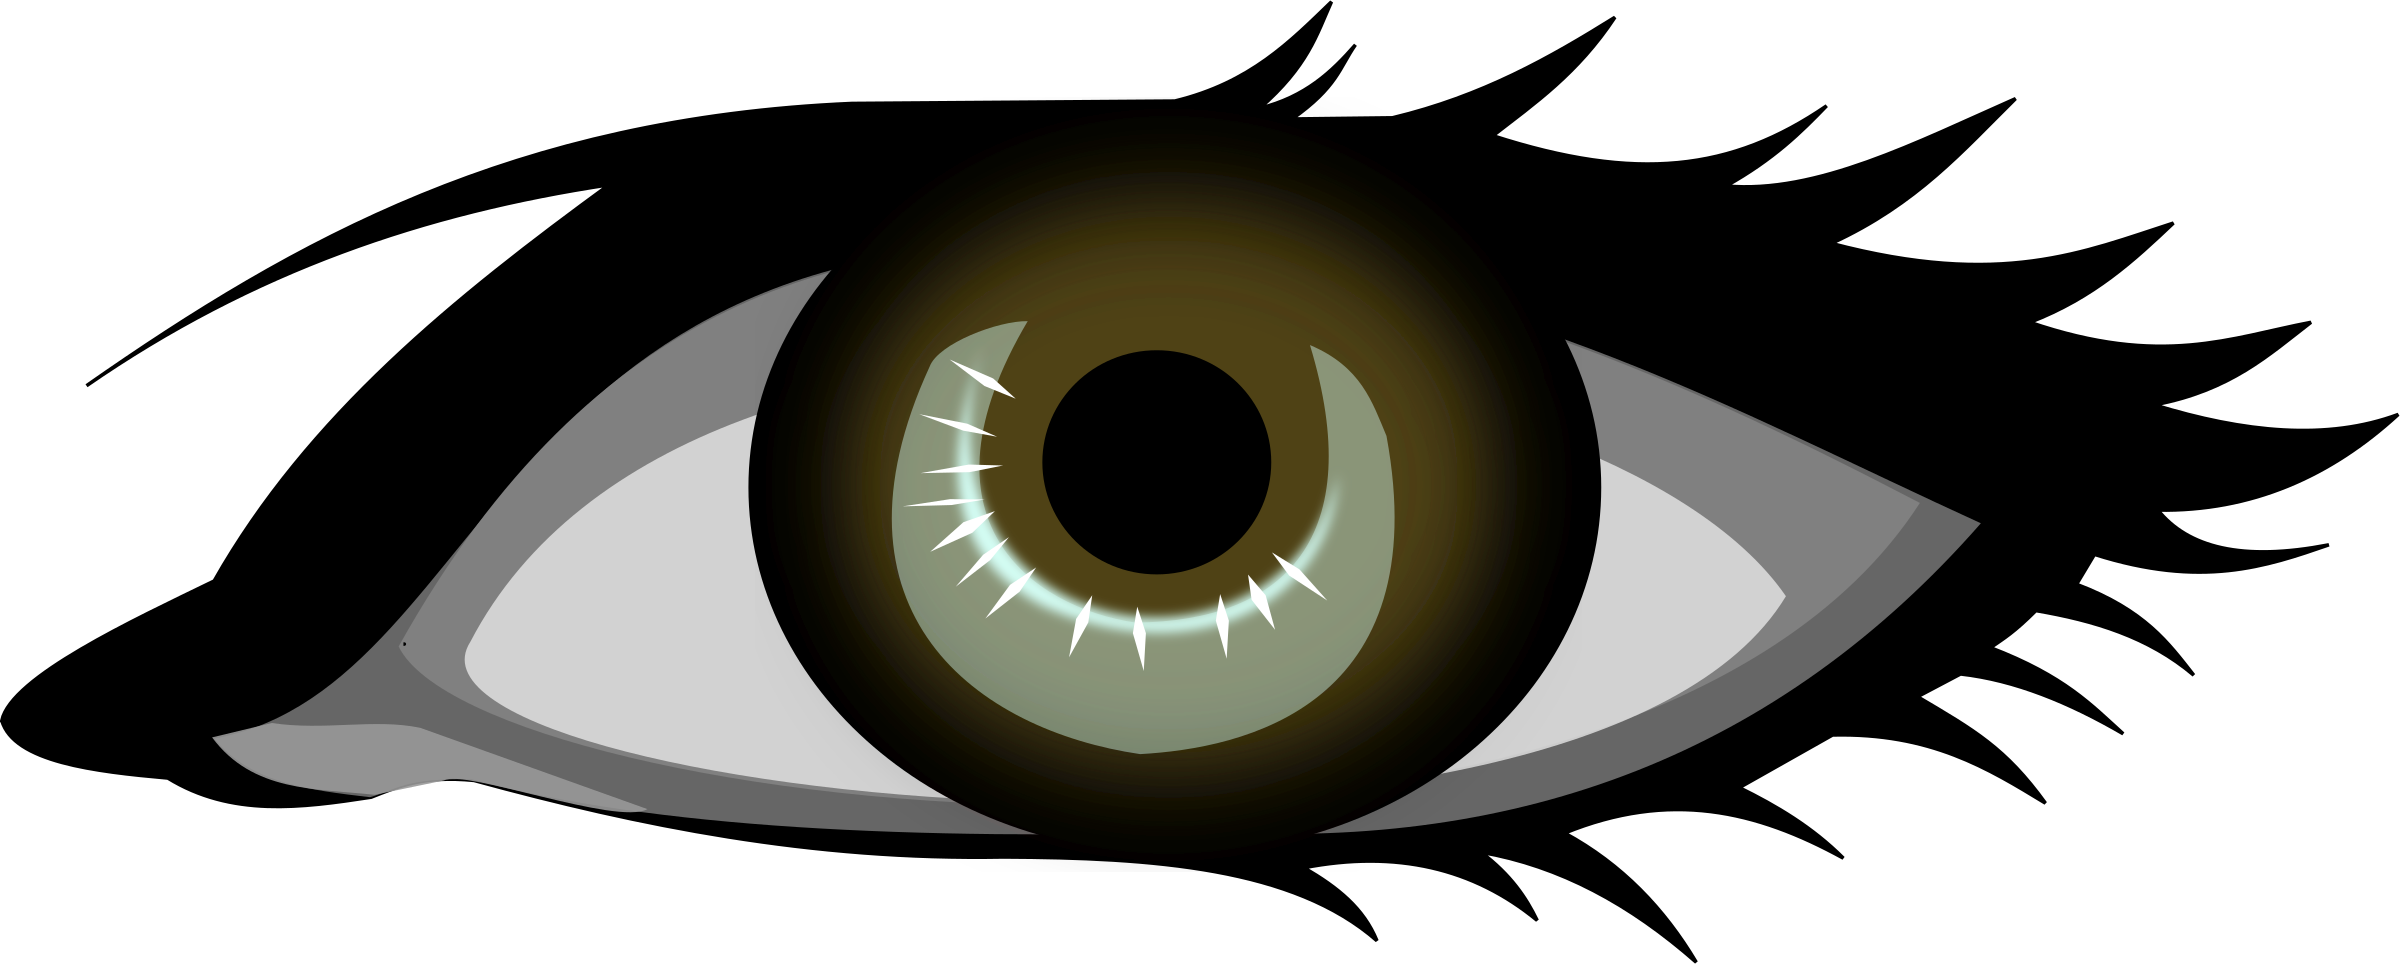 Eyes clipart brow. Eye brown graphics illustrations